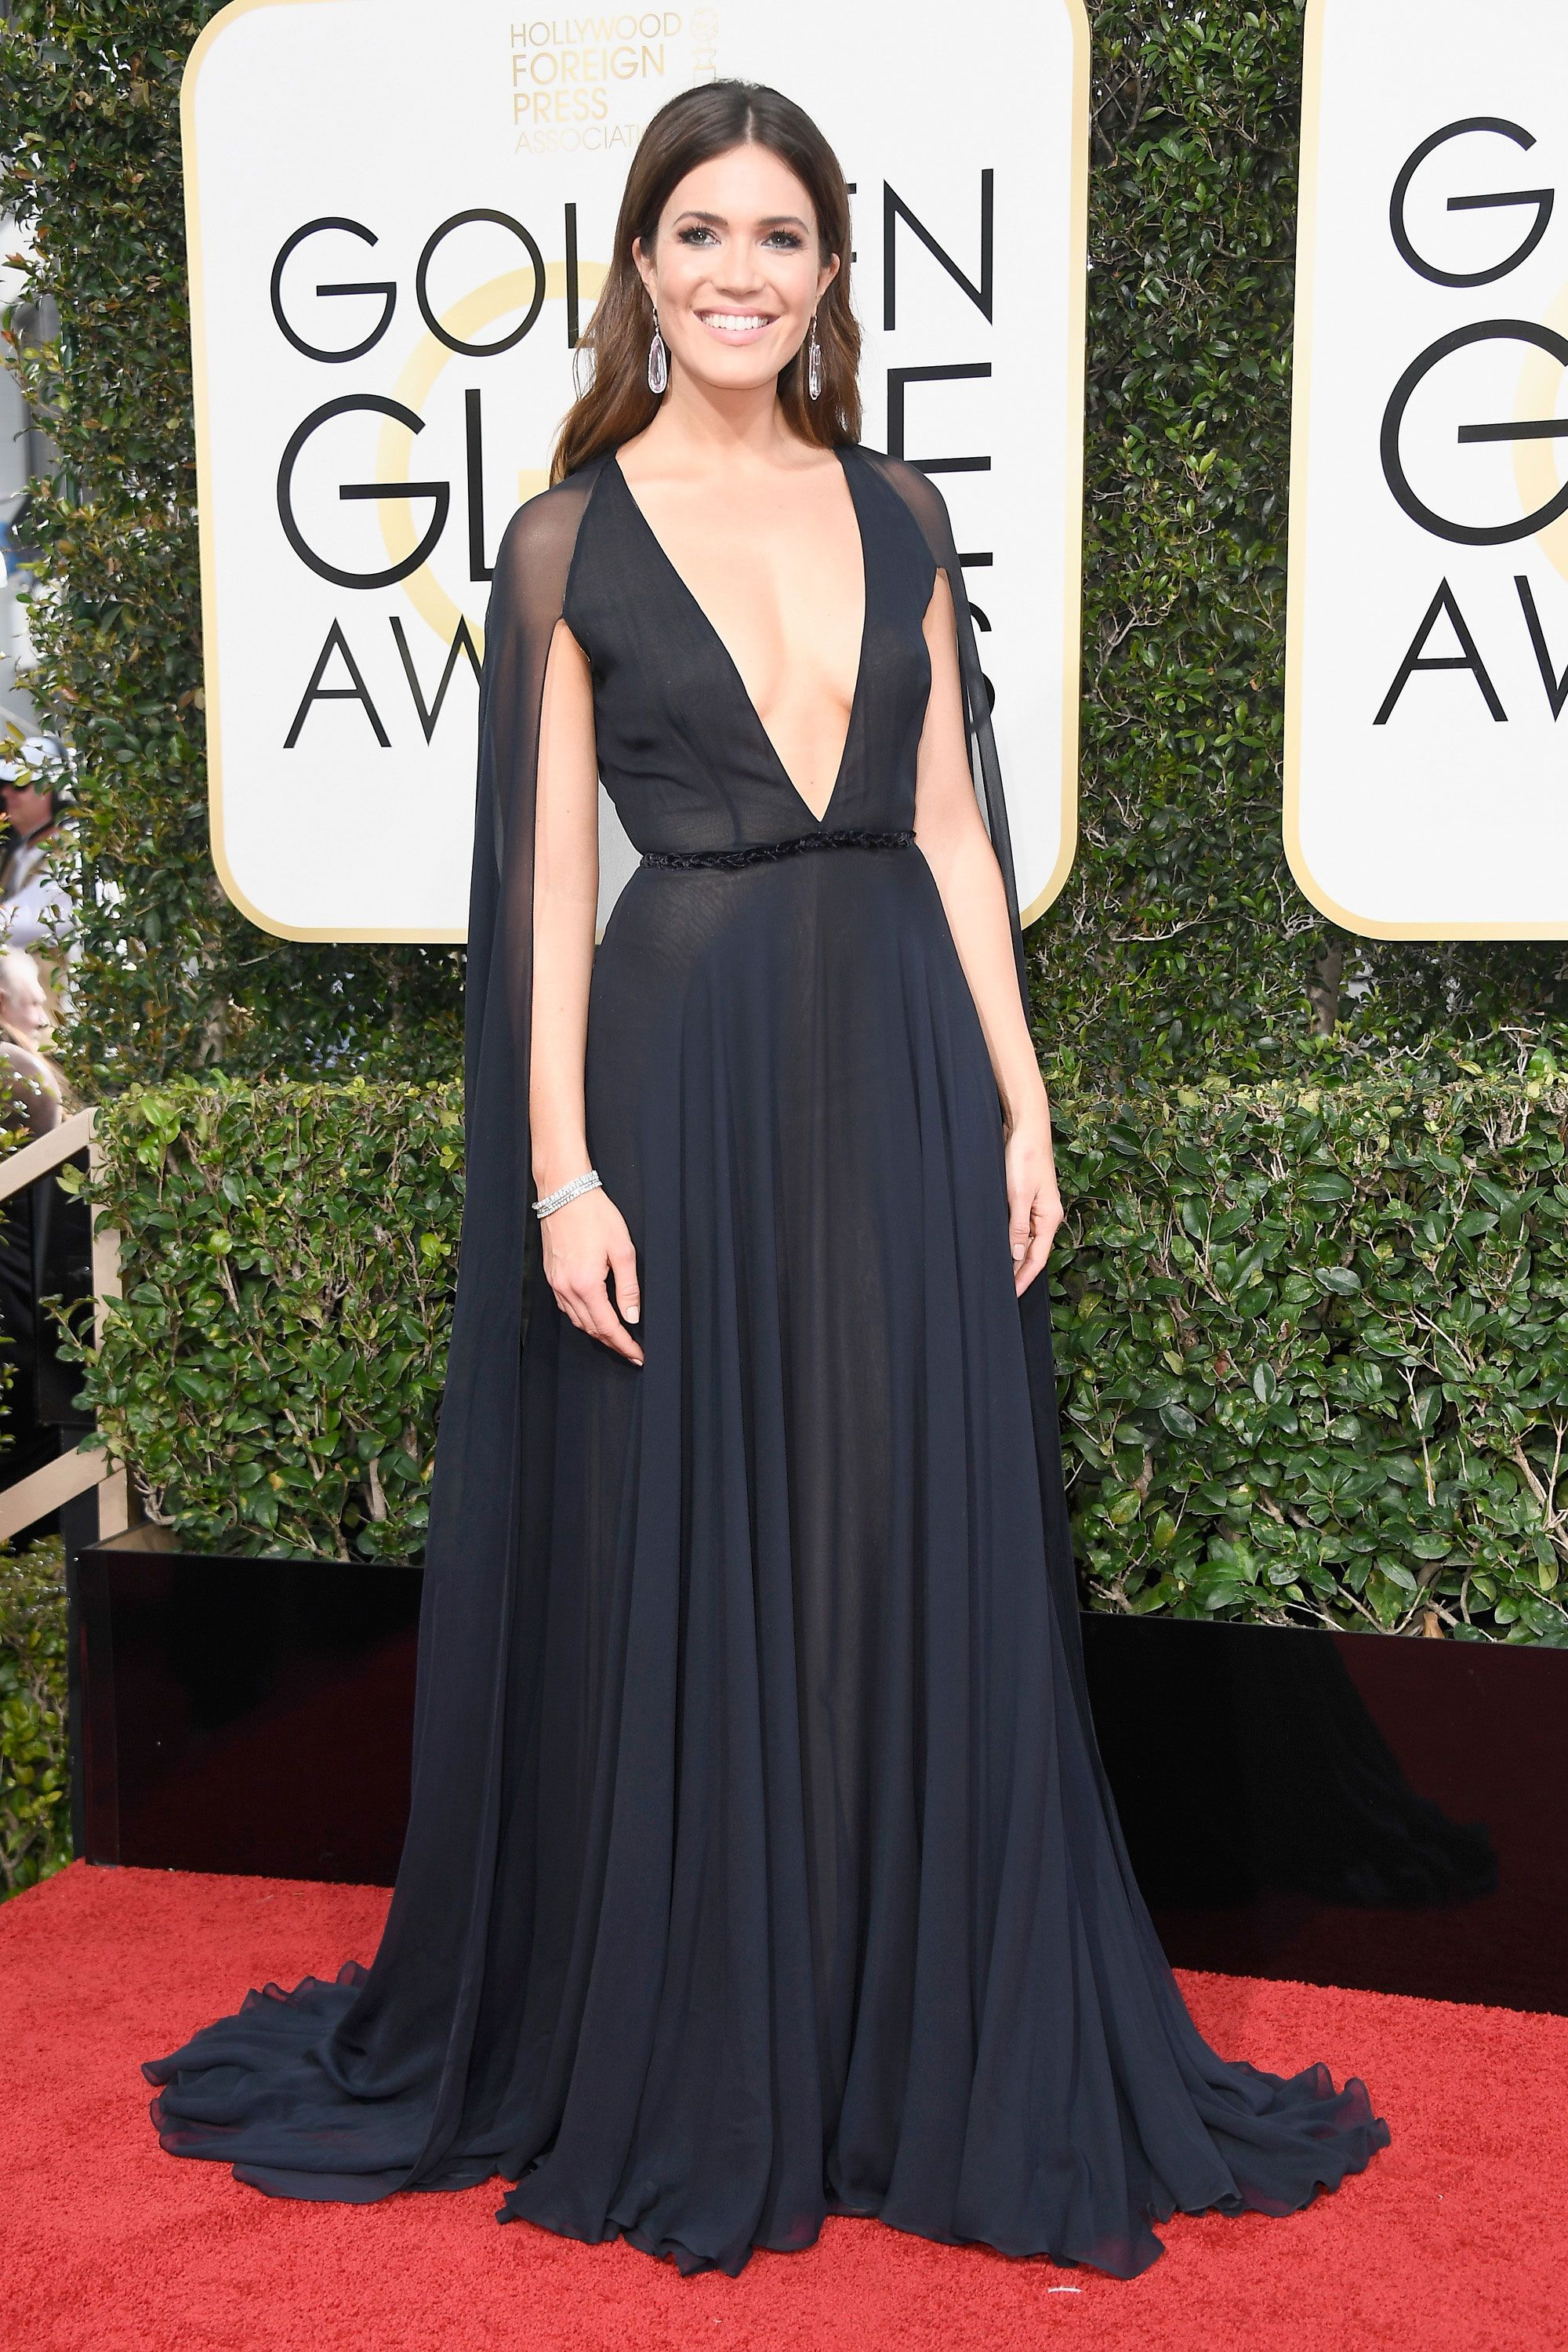 Best Red Carpet Dresses From the 2017 Golden Globes